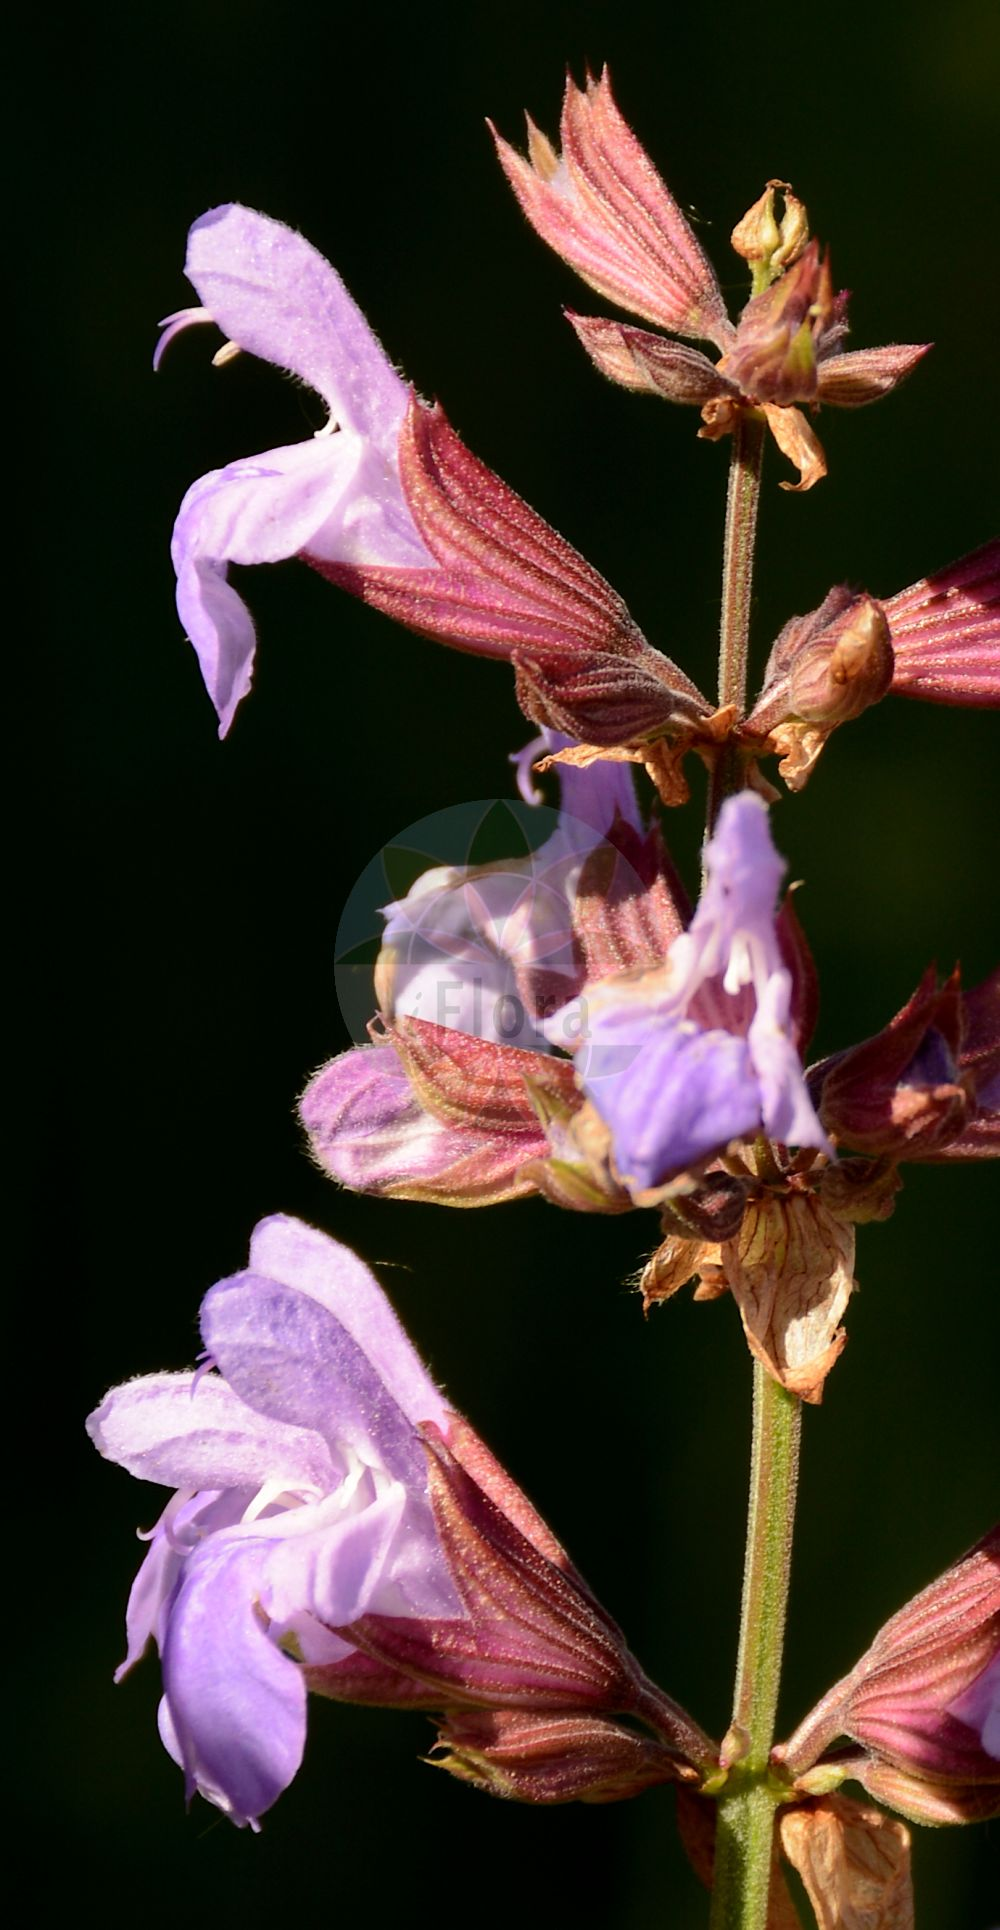 Foto von Salvia officinalis (Echter Salbei - Sage). Das Bild zeigt Bluete. Das Foto wurde in Besancon, Bourgogne-Franche-Comté (Praefektur), Frankreich aufgenommen. ---- Photo of Salvia officinalis (Echter Salbei - Sage).The image is showing flower.The picture was taken in Besançon, Bourgogne-Franche-Comté.(Salvia officinalis,Echter Salbei,Sage,Common Kitchen Garden ,Salvia,Salbei,Sage,Lamiaceae,Lippenbluetengewaechse;Lippenbluetler,Nettle family,Bluete,flower)